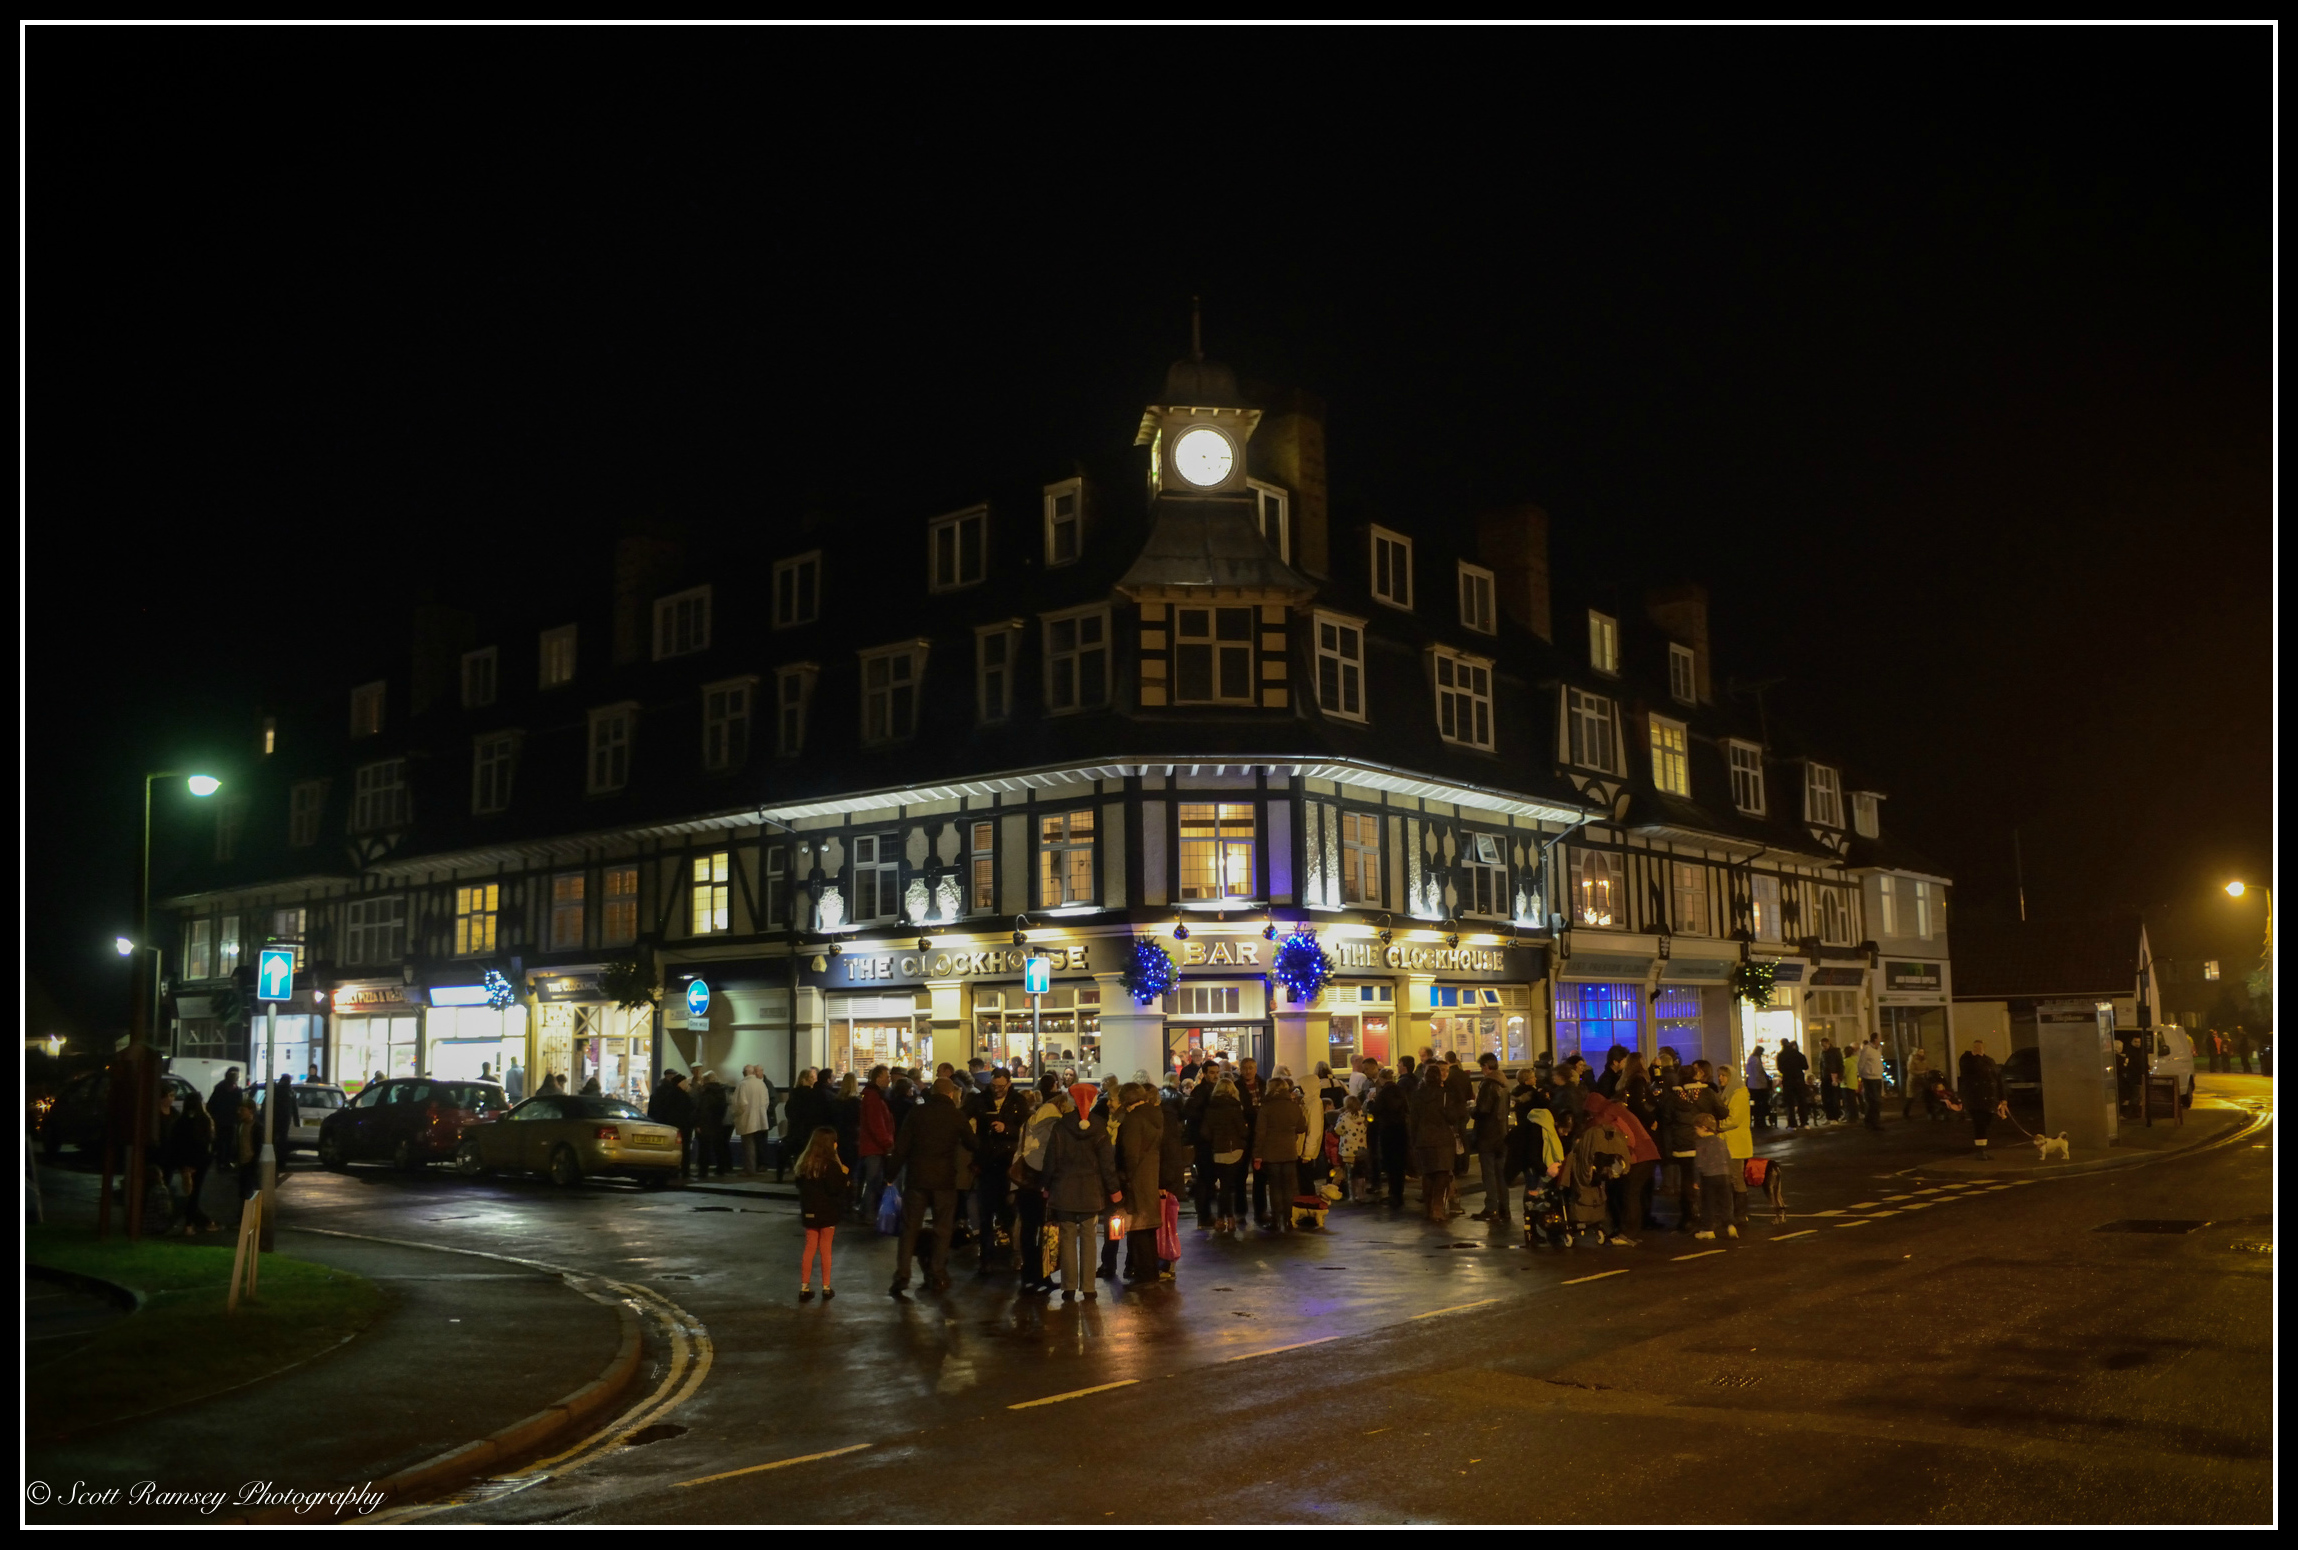 The Clockhouse Bar andshops lit up with Christmas lights in East Preston, West Sussex.